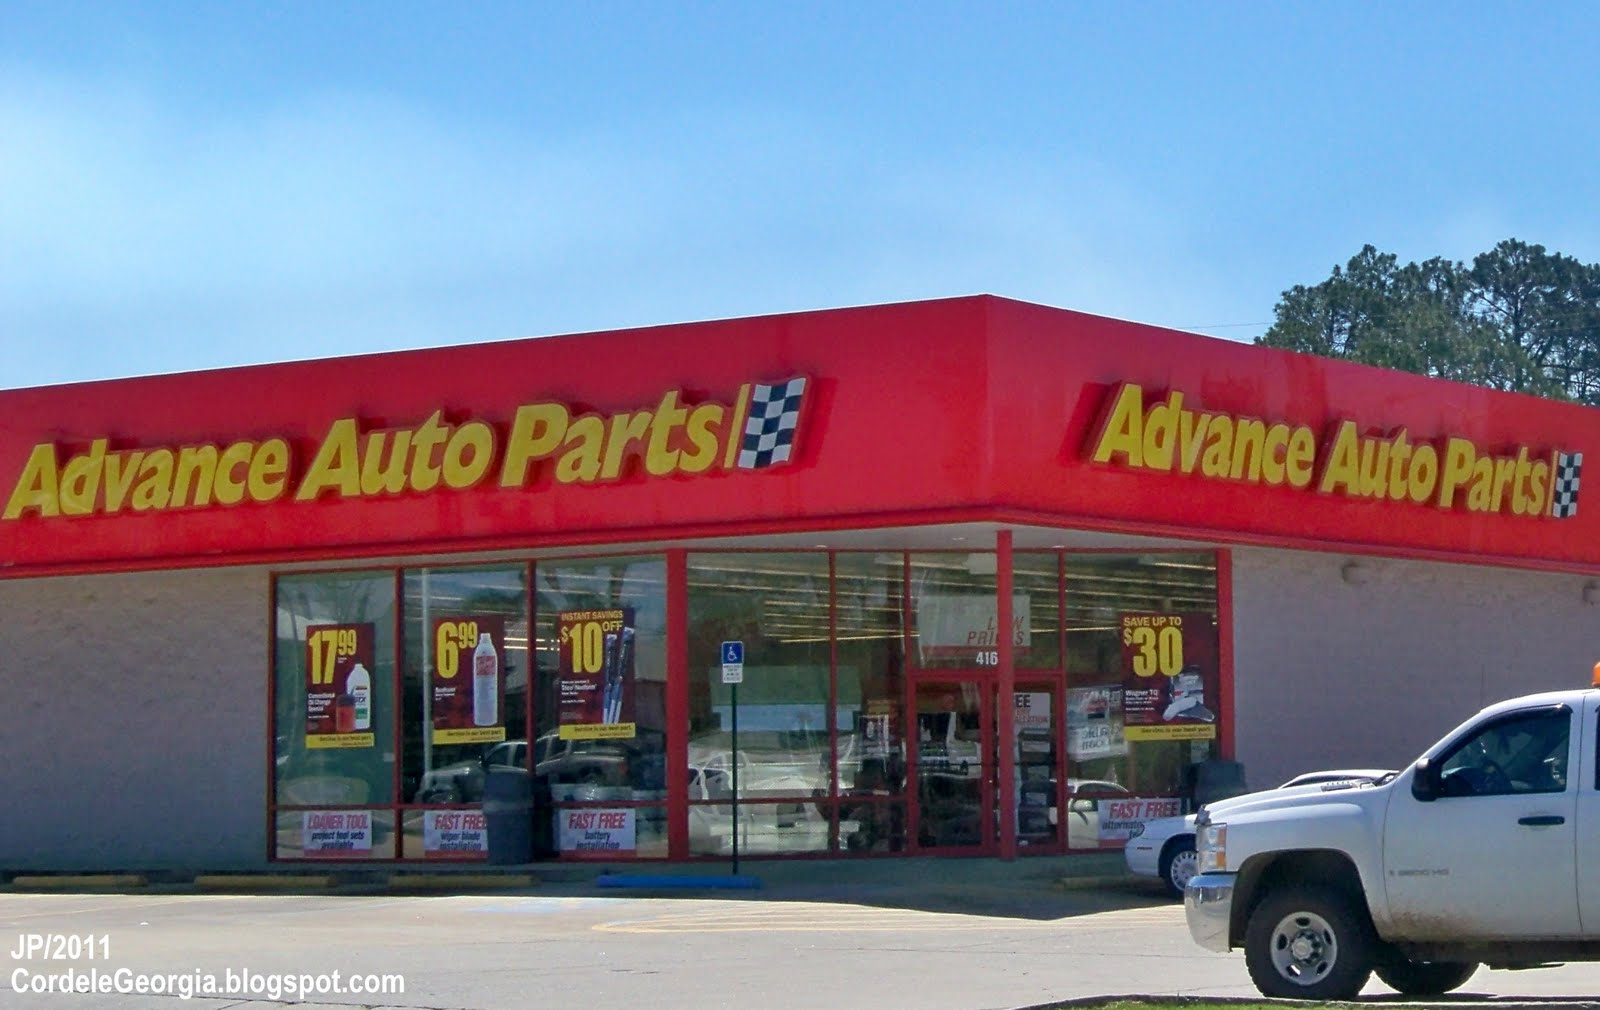 Advanced Auto Sales -() is a used car dealer in Rockland, Abington, Hanover, Holbrook, Massachusetts selling used Acura, Chevrolet, Dodge, Ford, Honda, Infiniti, Jeep, Nissan and Toyota.